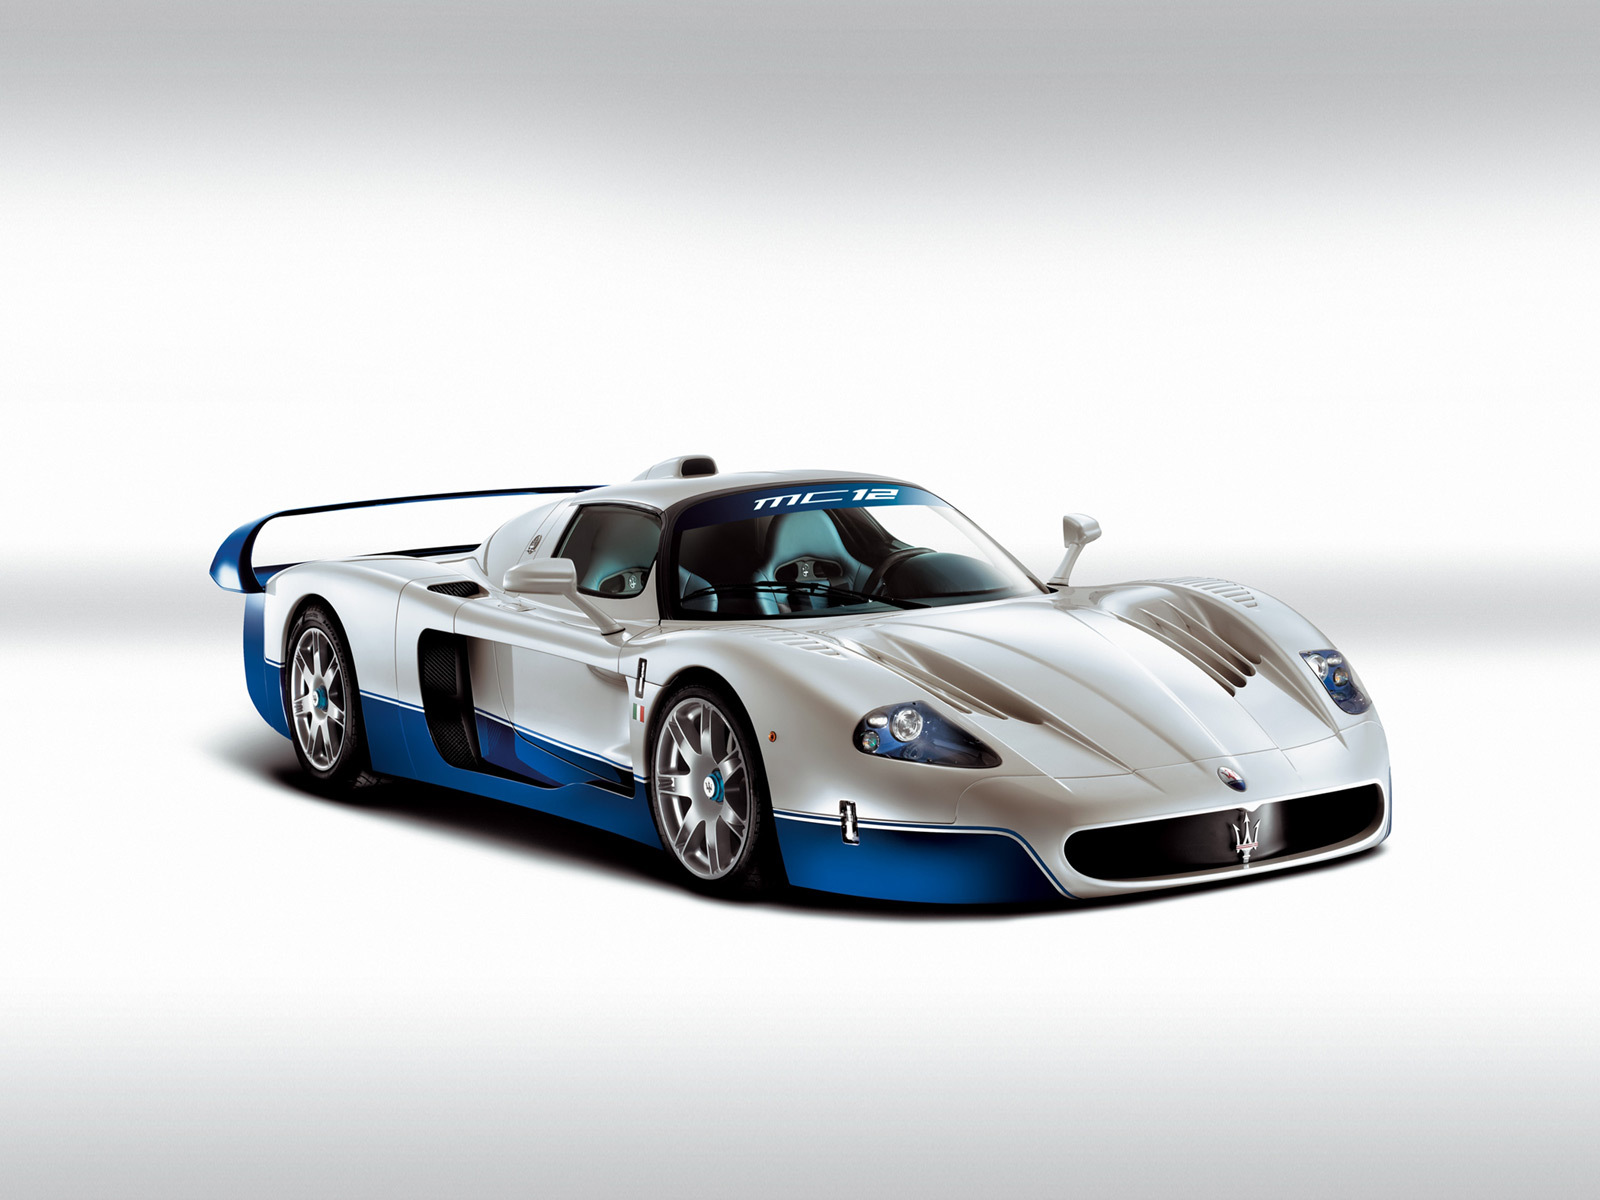 Maserati MC12 Coupe 2004